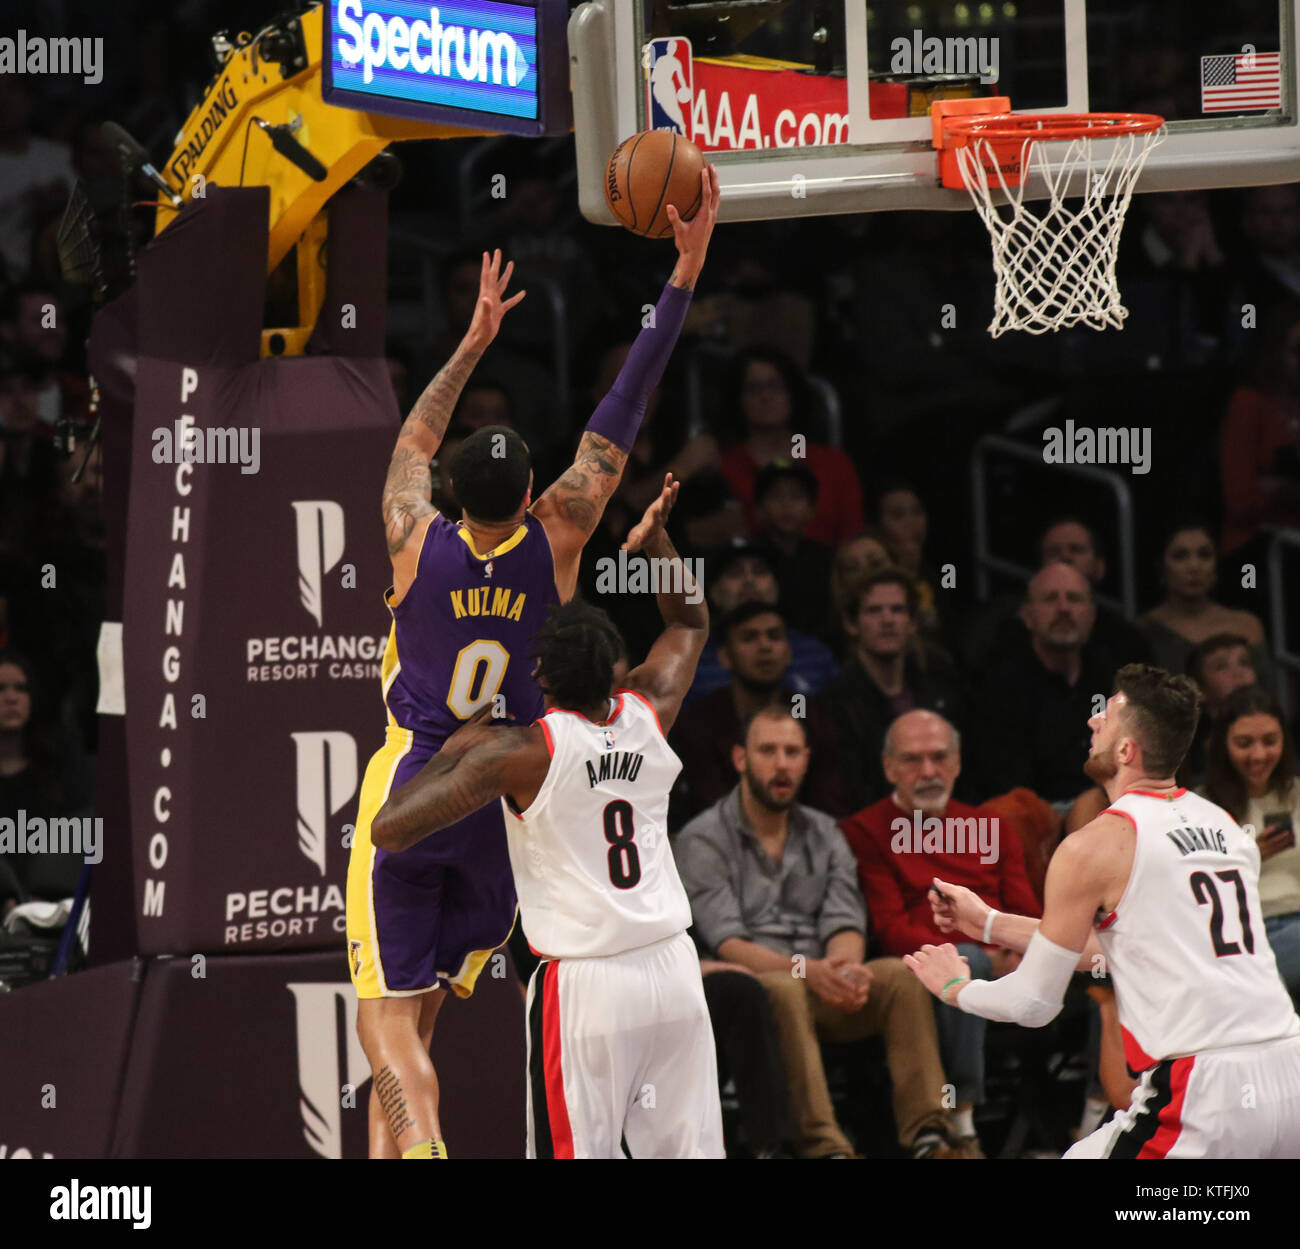 Los Angeles, CA, USA. 23rd Dec, 2017. Los Angeles Lakers forward Kyle Kuzma (0) going to the basket during the first Stock Photo